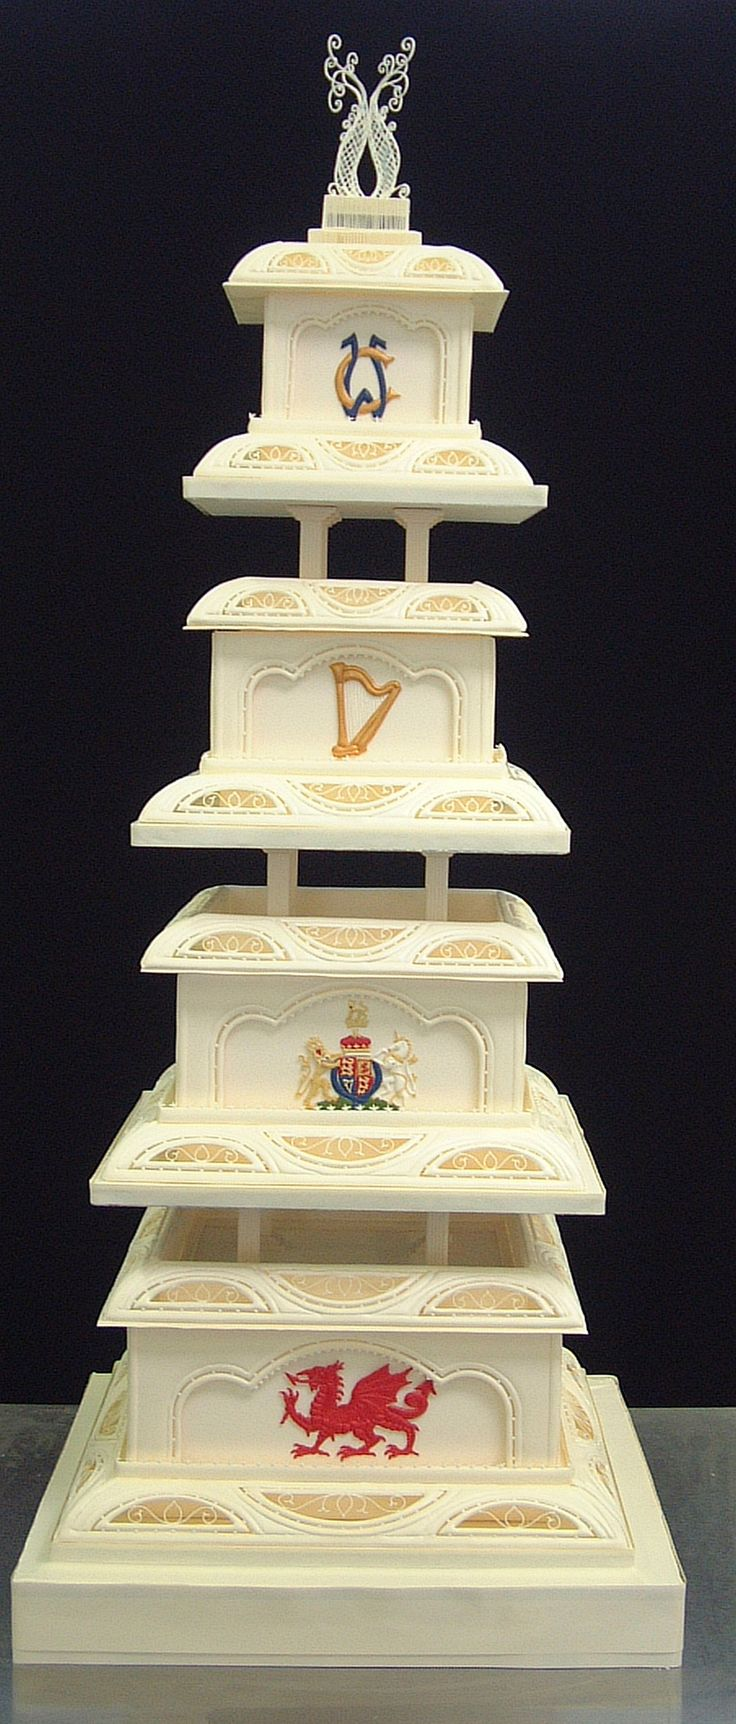 sainsburys royal wedding cakes royal wedding cake cakes 19623